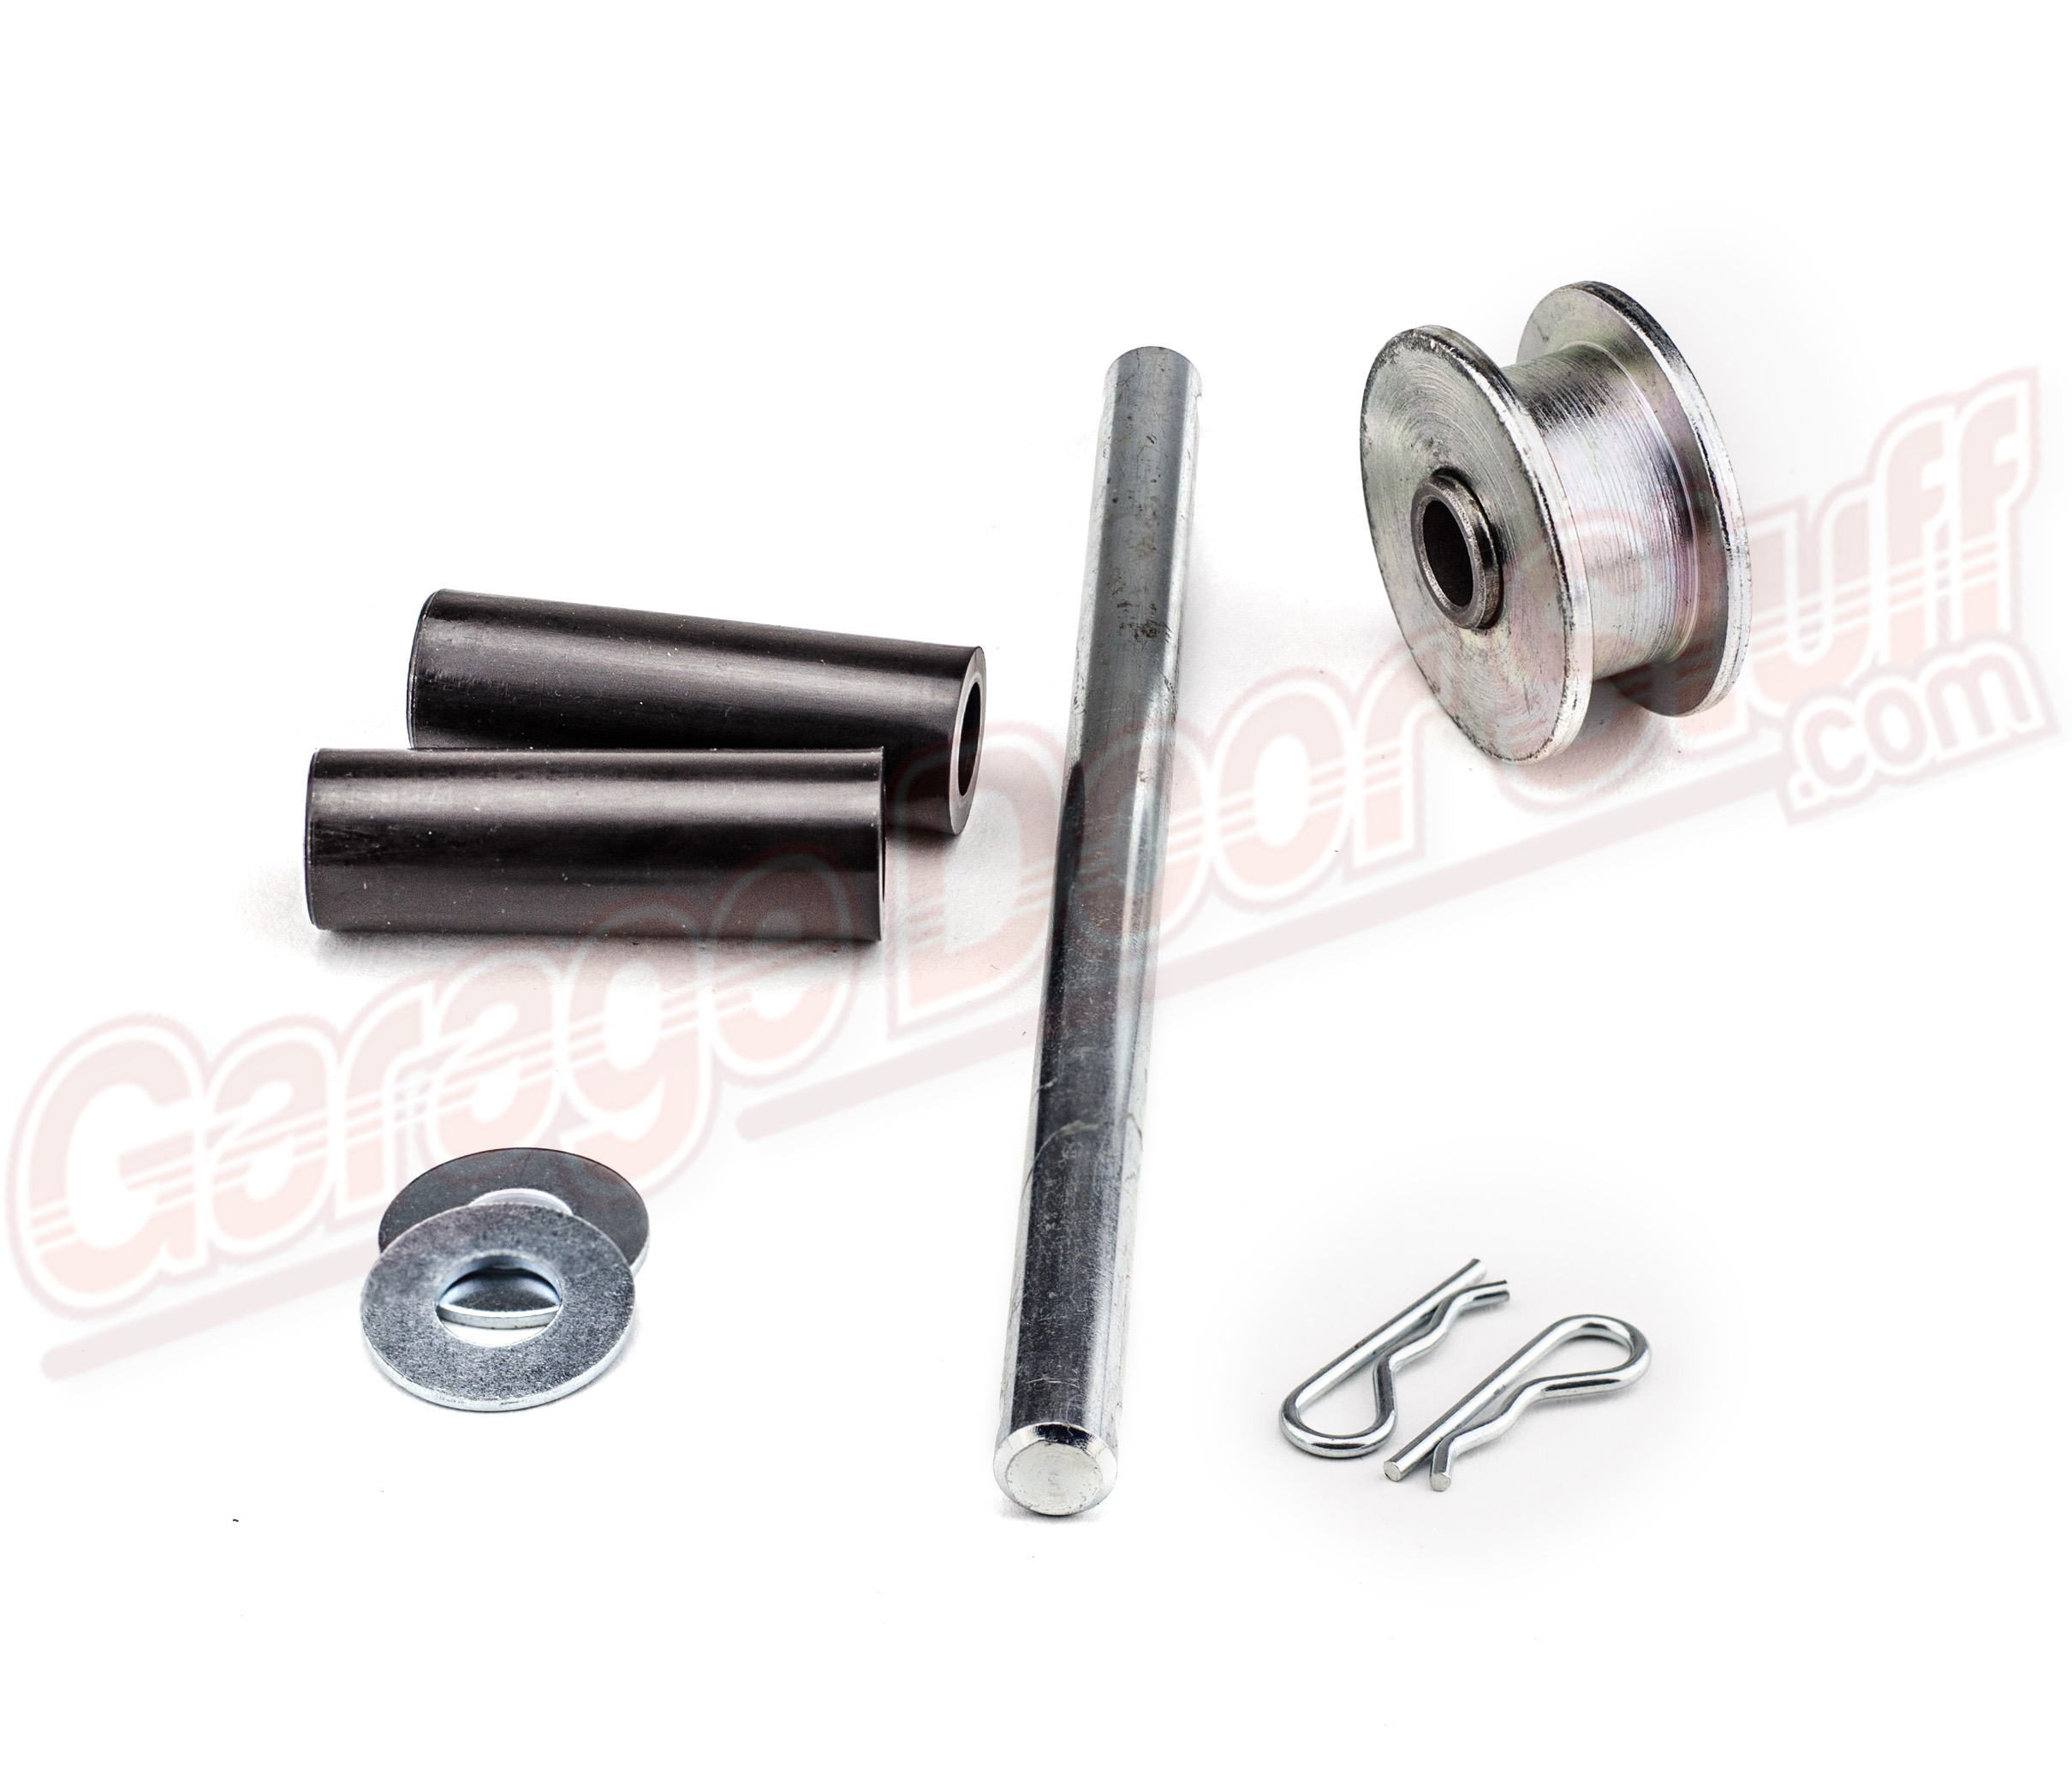 Commercial Garage Door Opener Idler Pulley